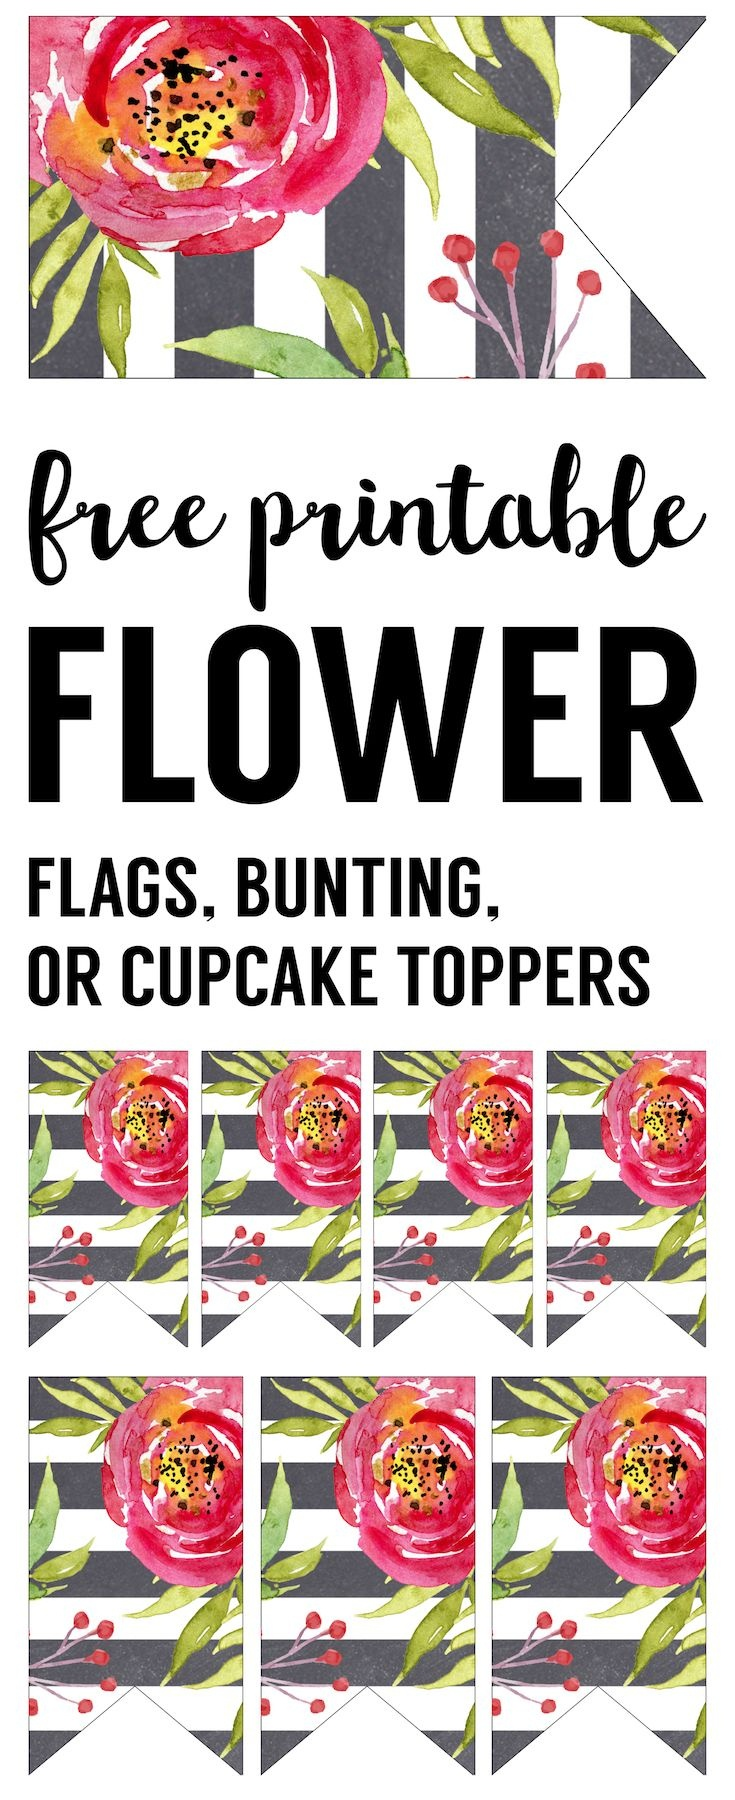 Flower Cupcake Topper Flags Free Printable | Relief Society - Free Printable Cupcake Toppers Bridal Shower